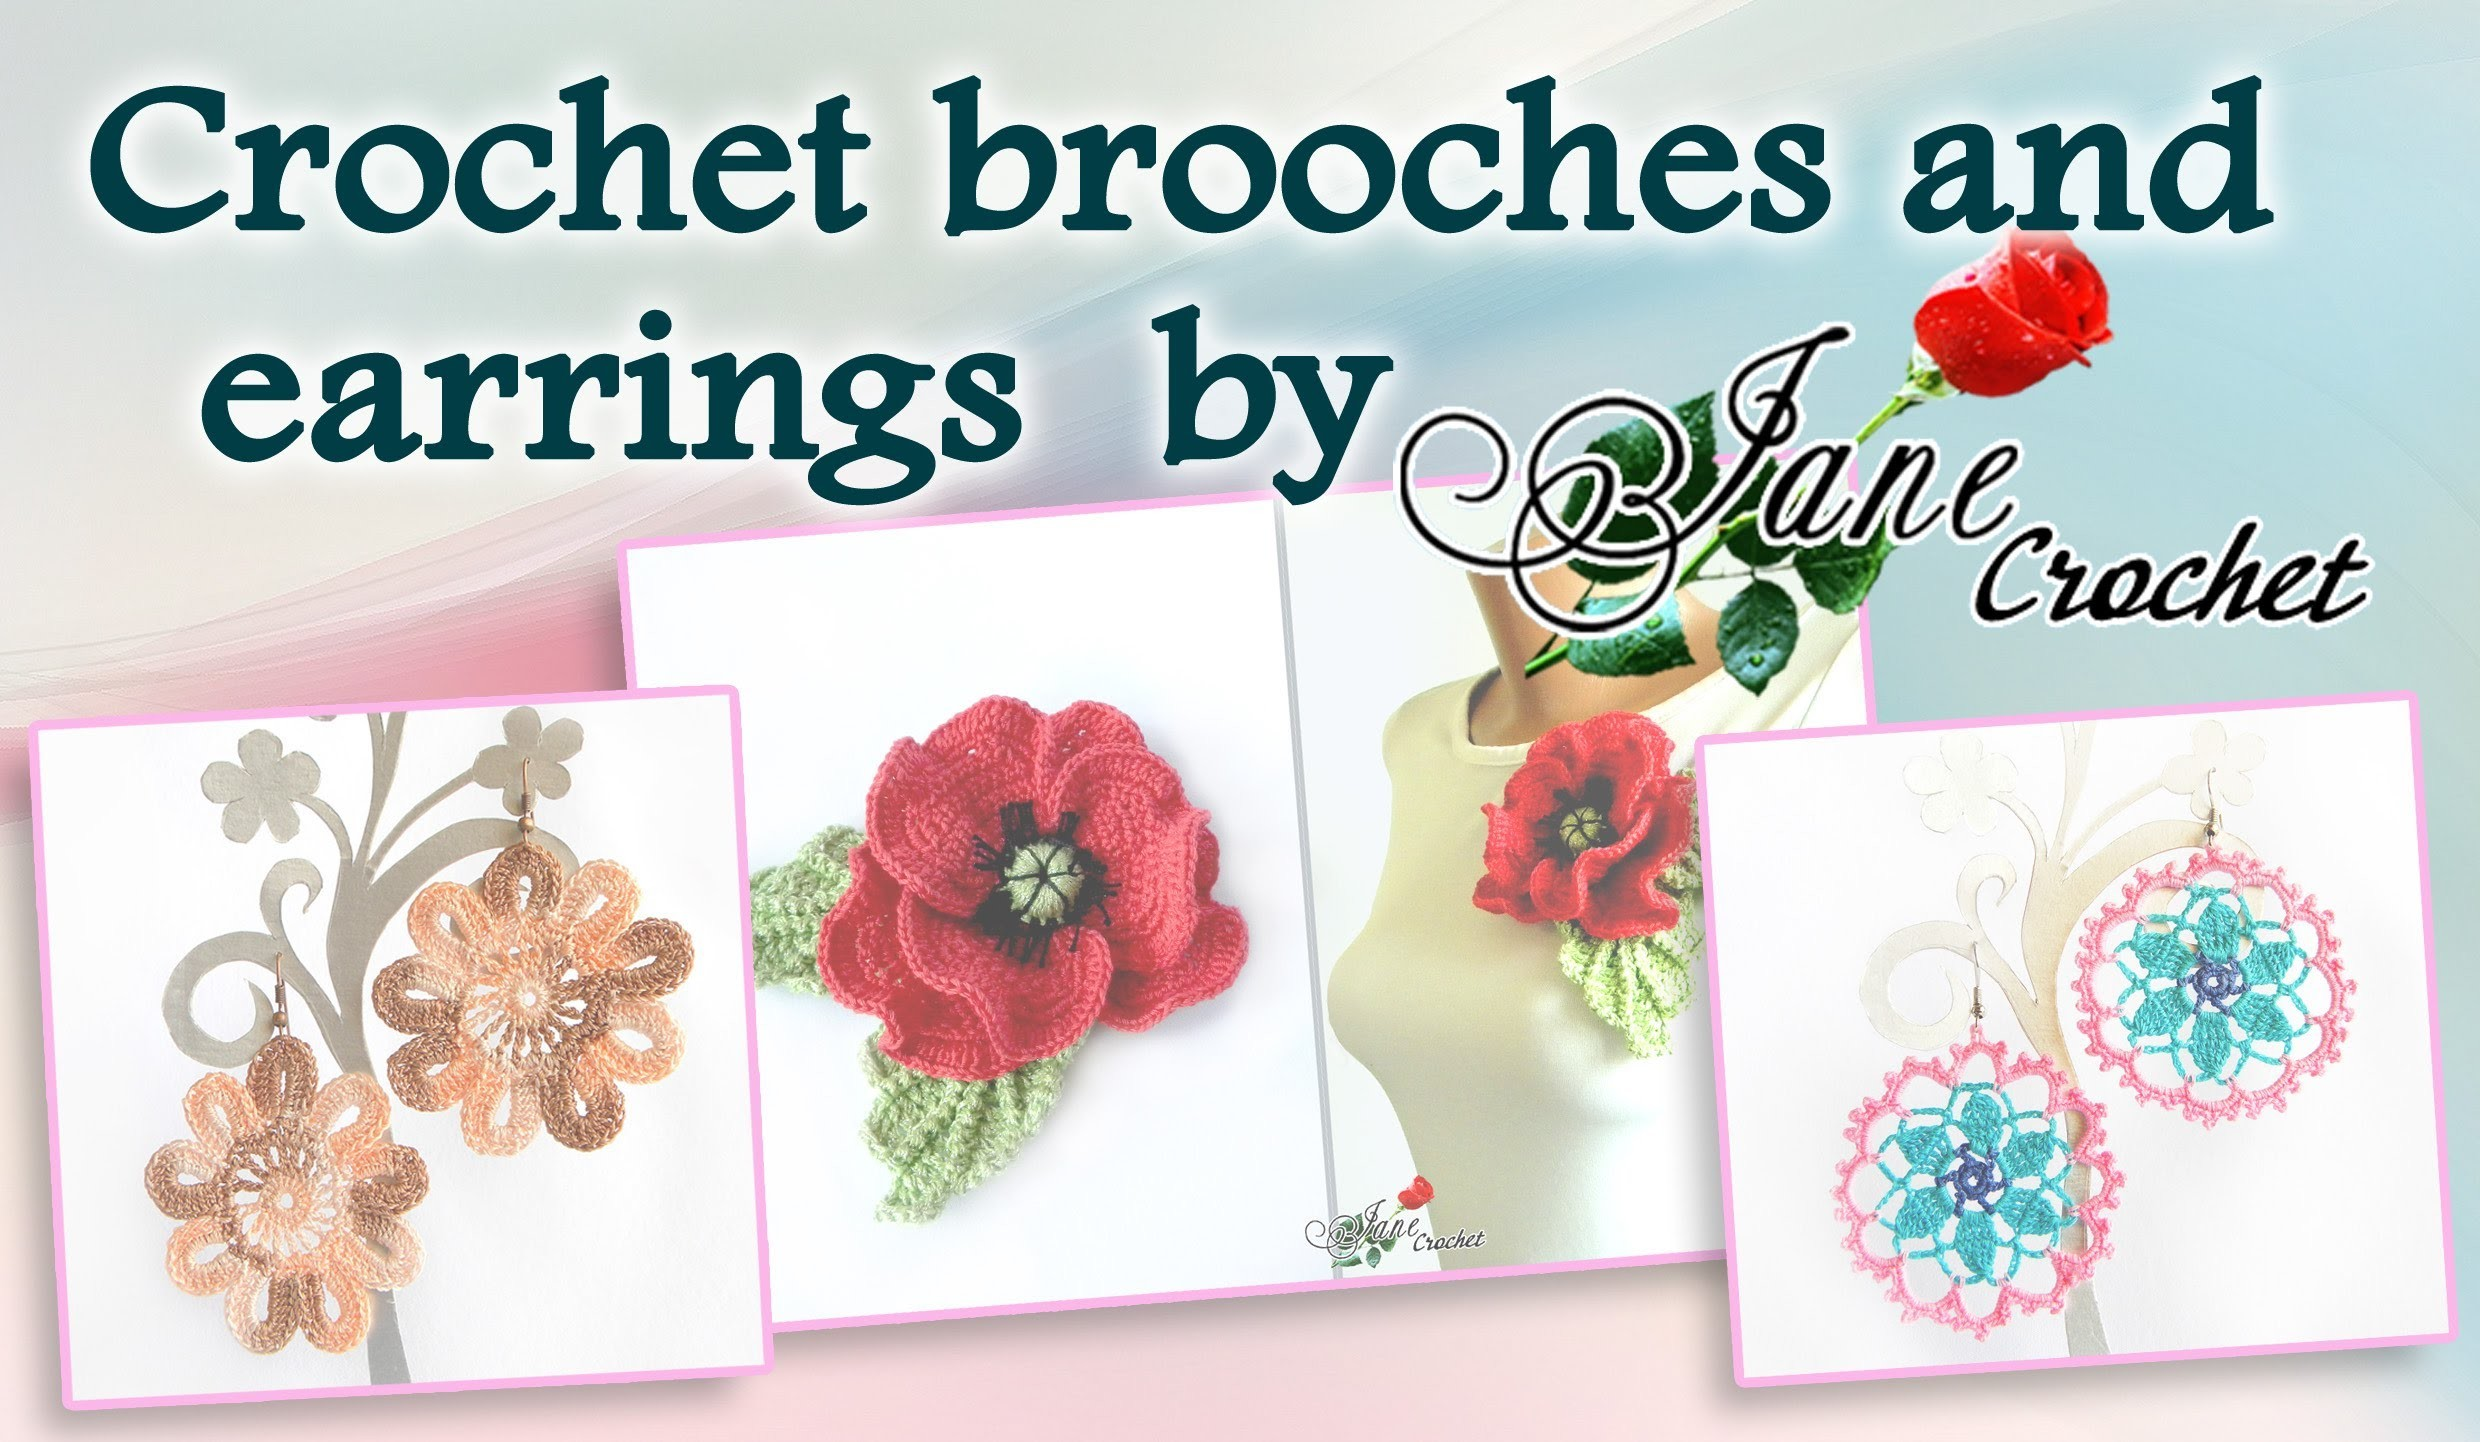 Crochet accessories and jewelry by Jane